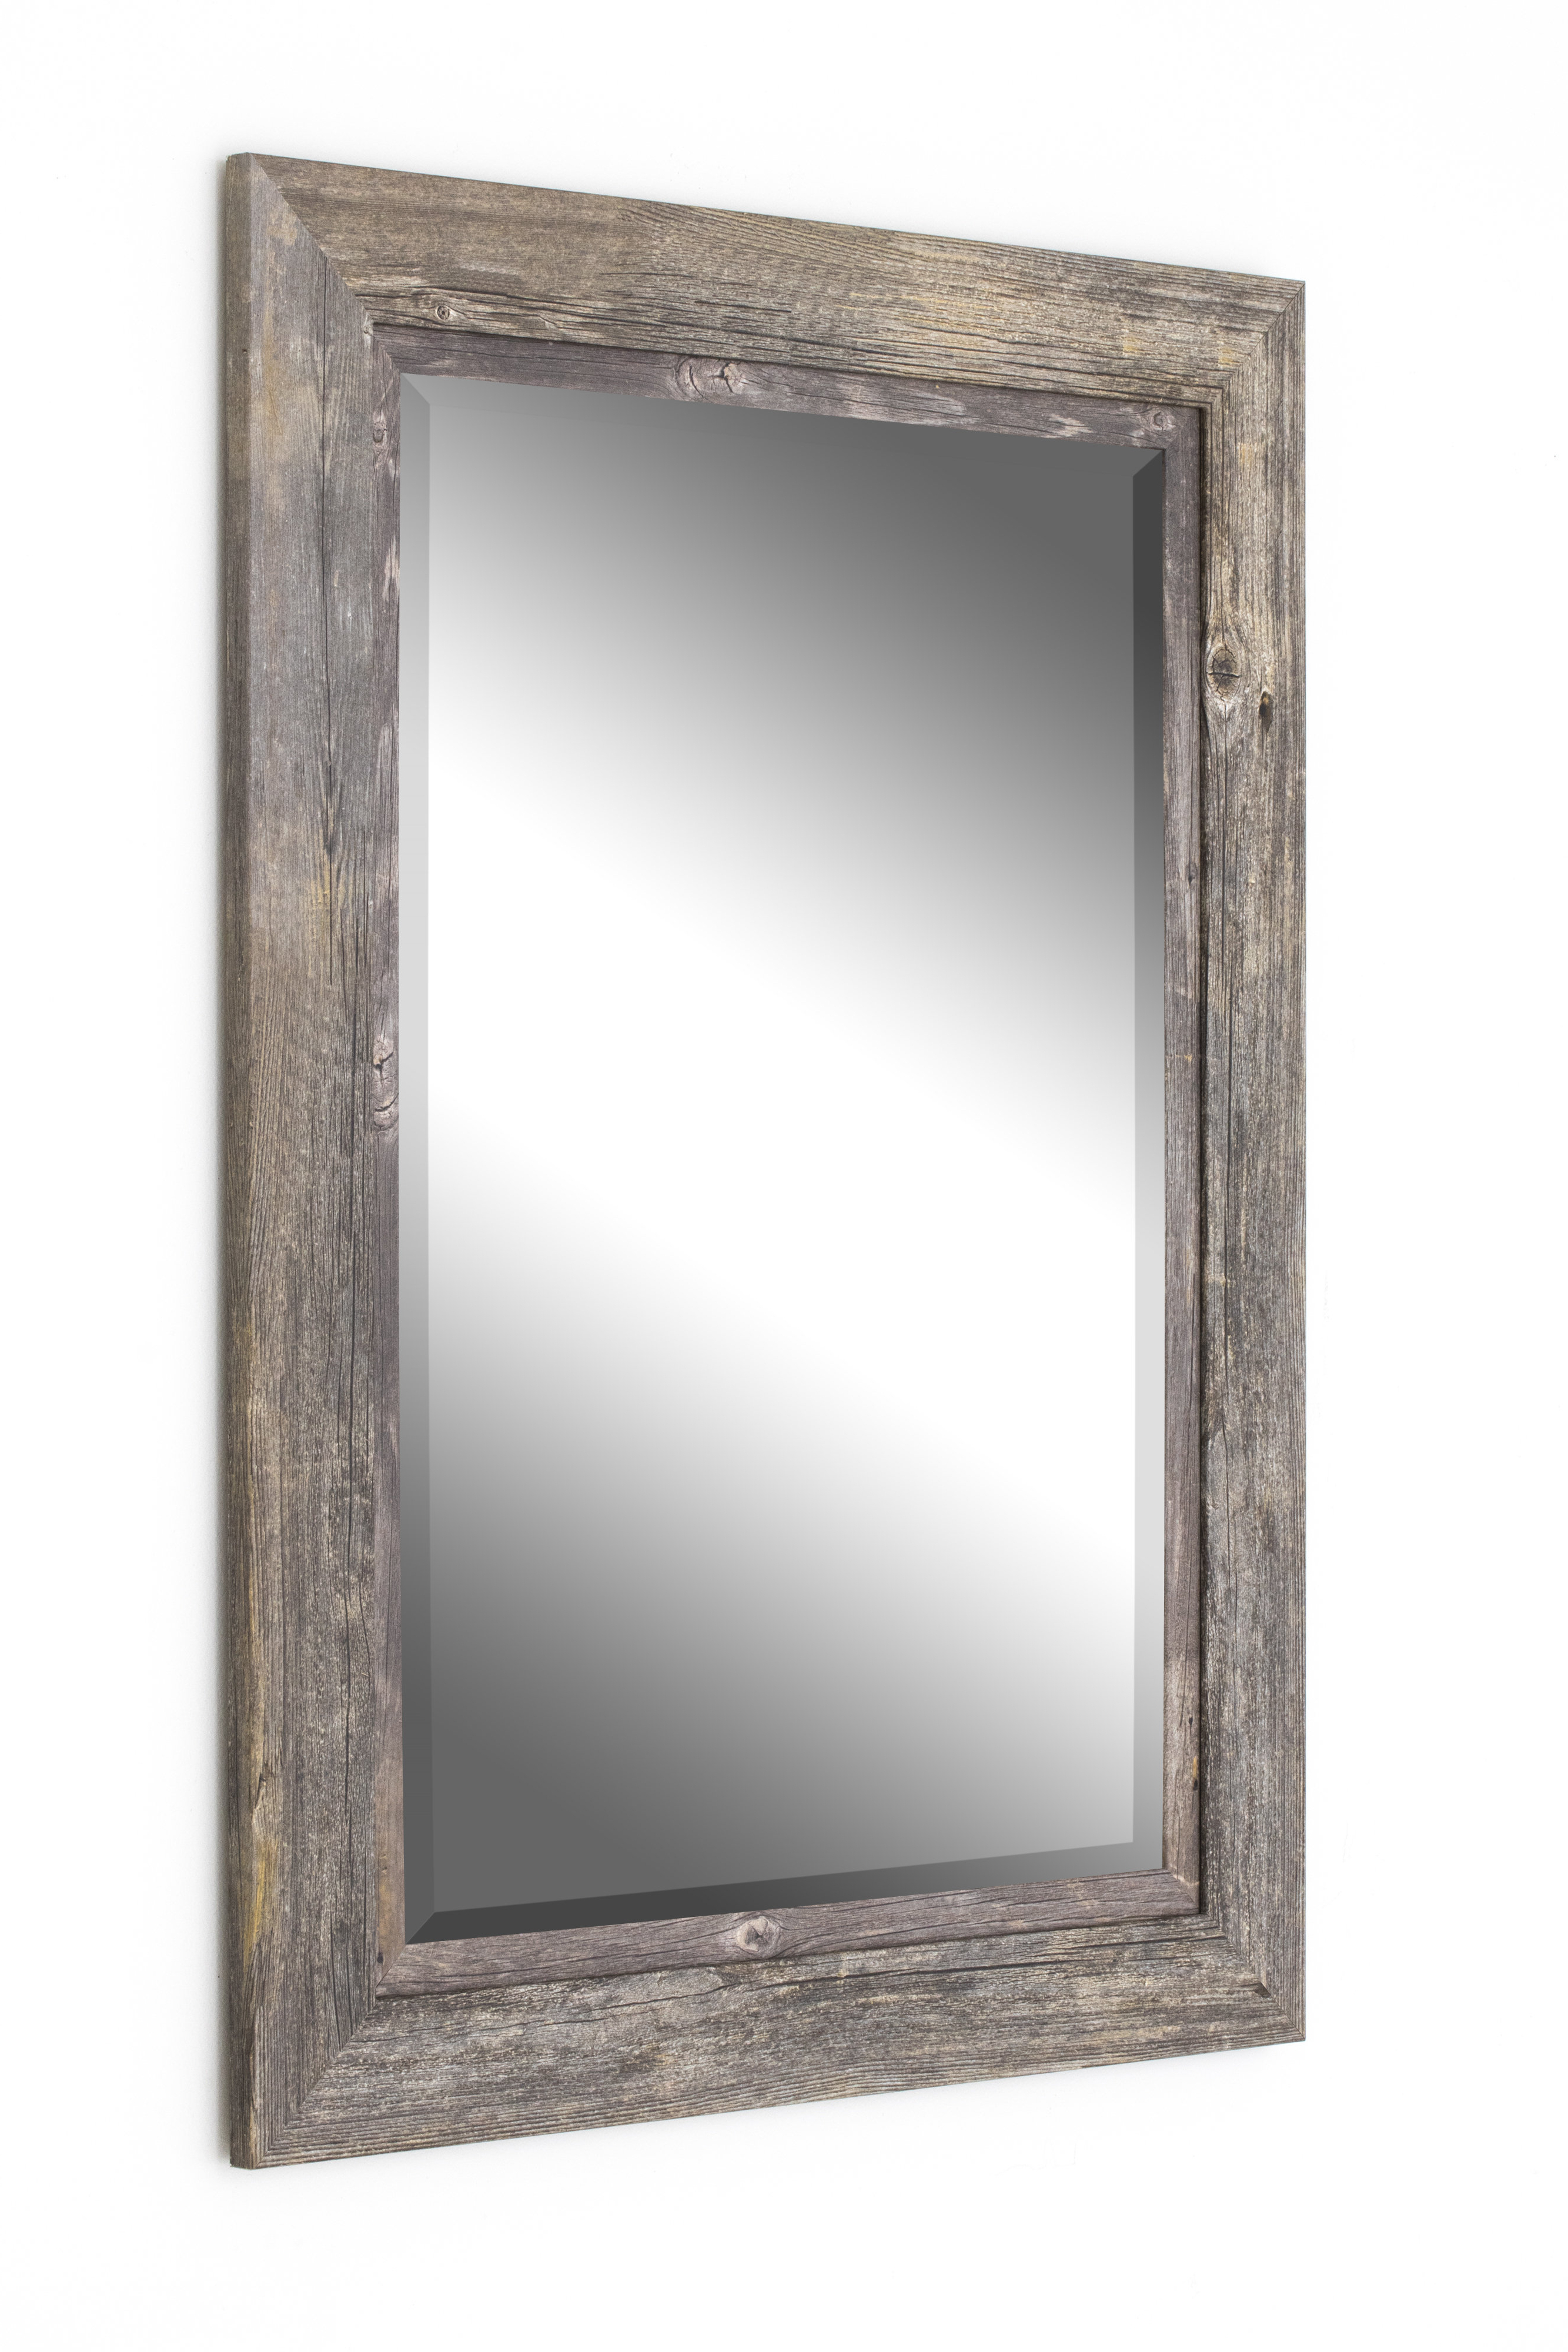 Widely Used Traditional Beveled Accent Mirror With Regard To Modern & Contemporary Beveled Accent Mirrors (View 20 of 20)